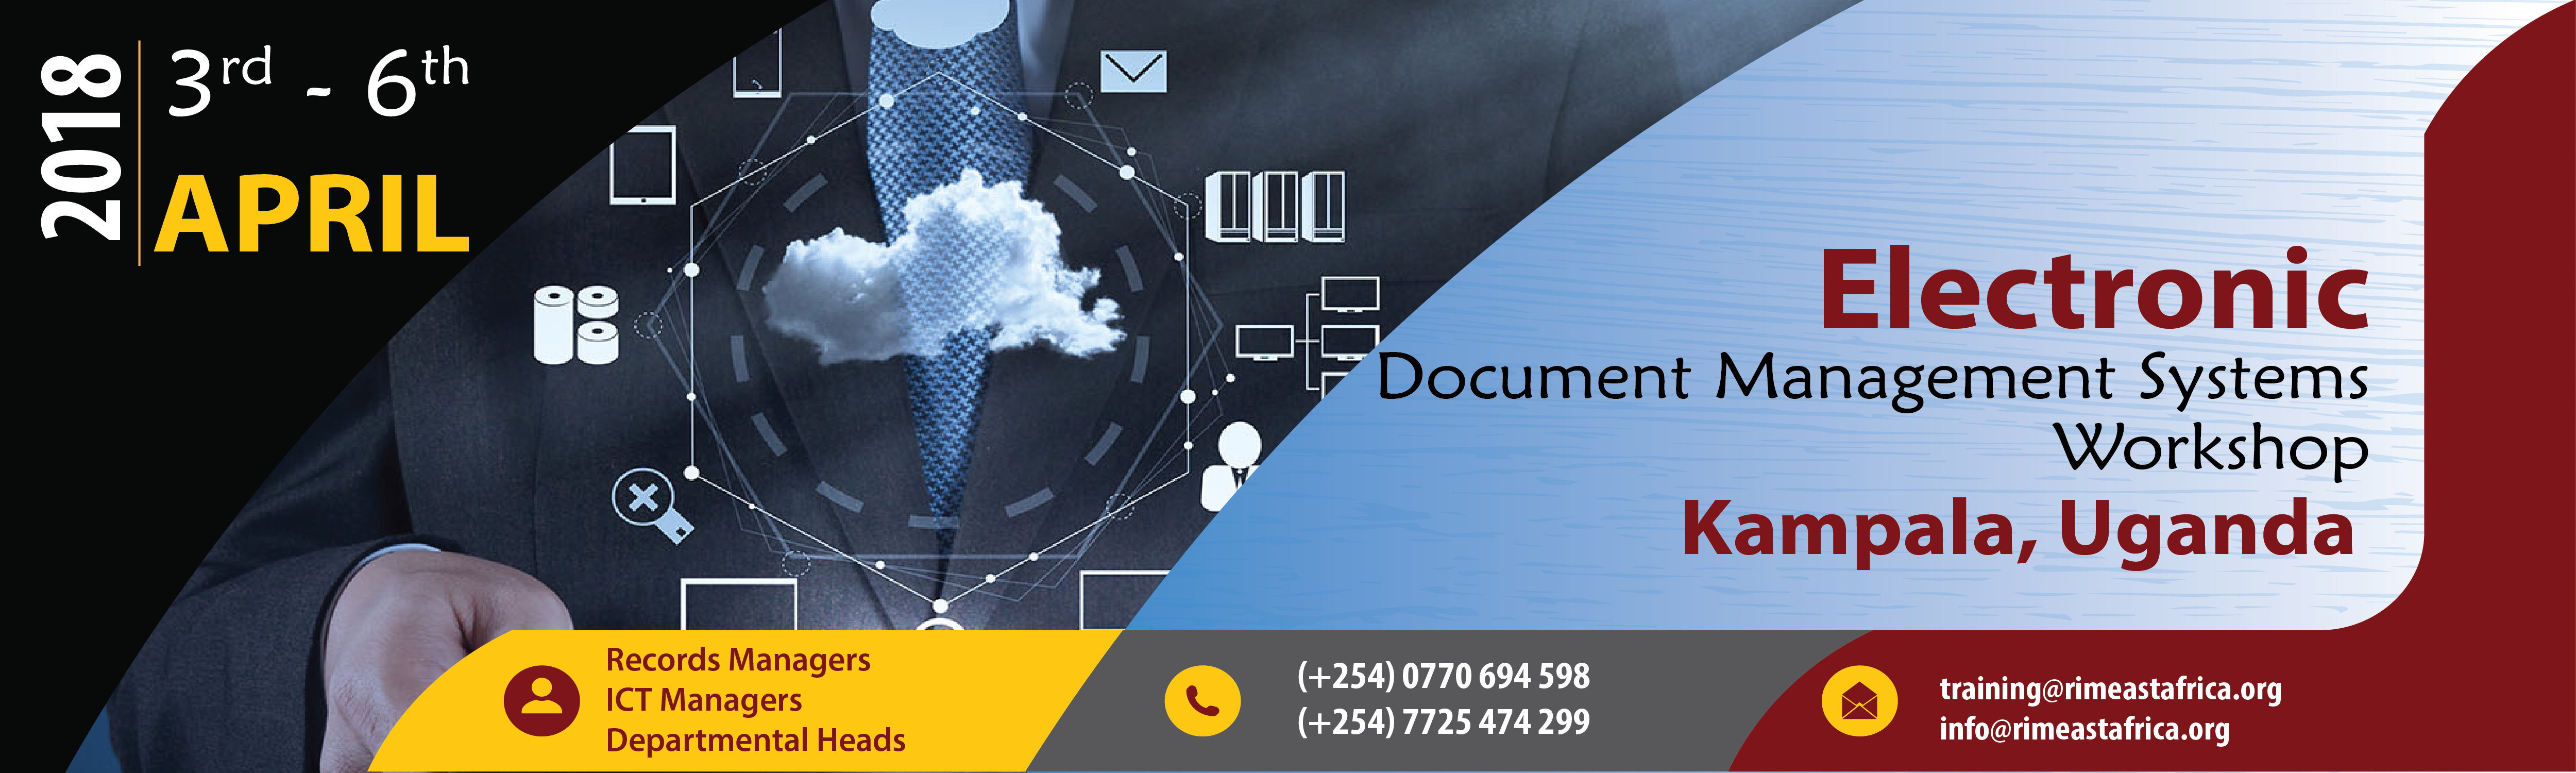 Electronic Document Management Workshop- Kampala Edition from 3rd to 6th April 2018